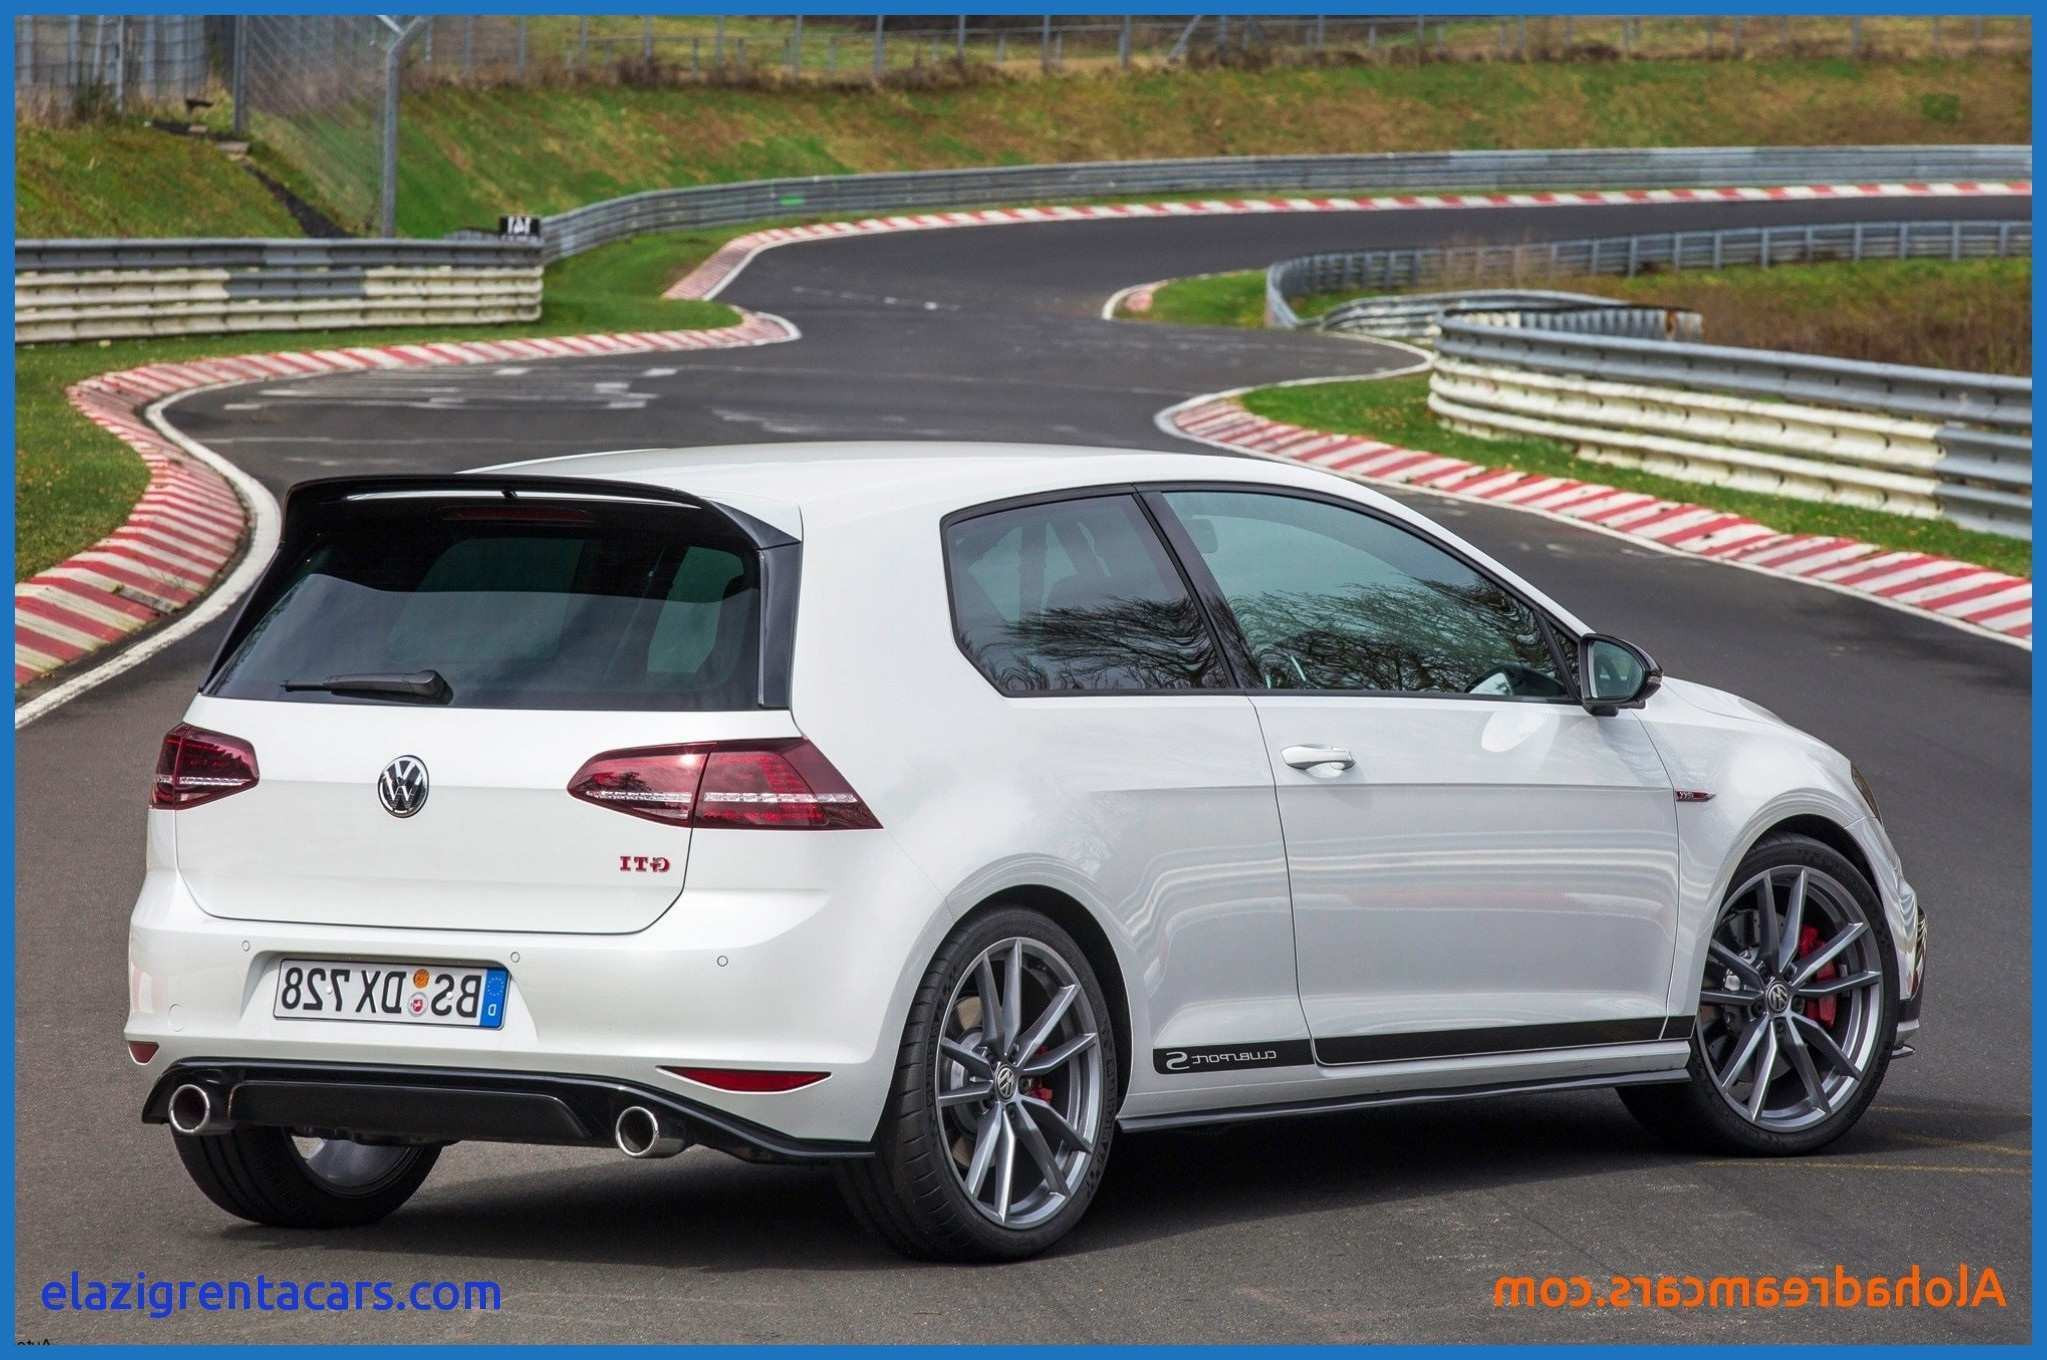 27 Best 2020 VW Golf R USA Price And Release Date